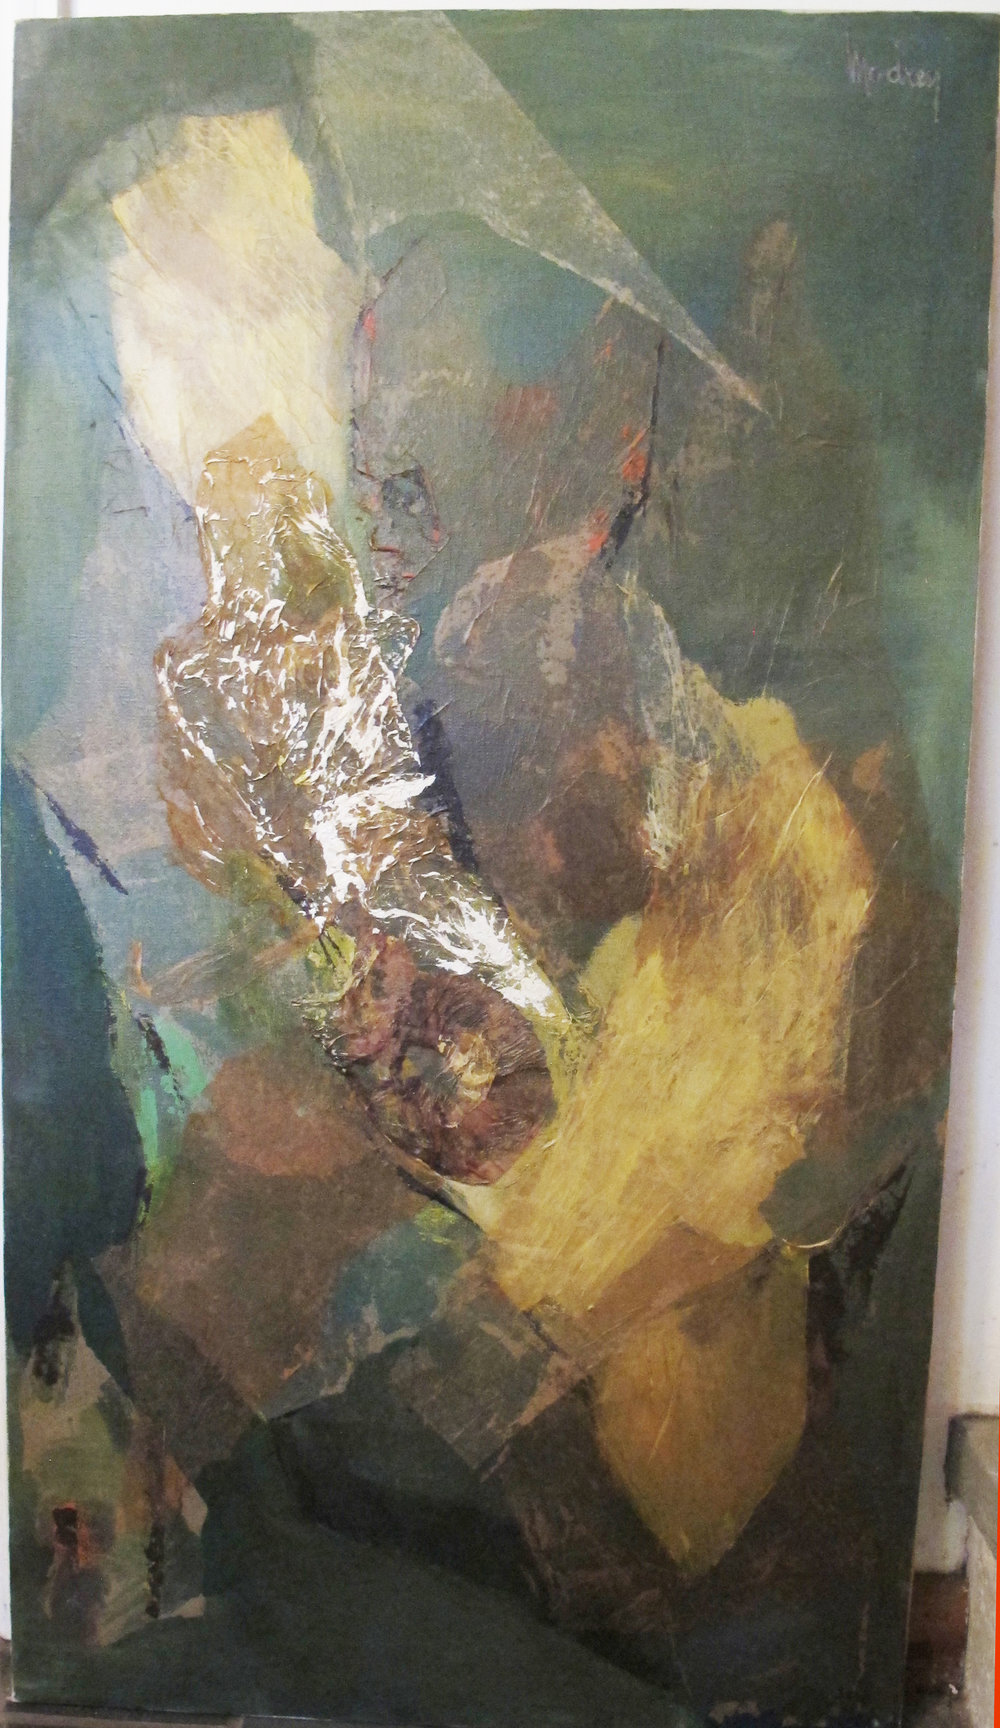 MID CENTURY ABSTRACT OIL ON CANVAS BY E. MODREY